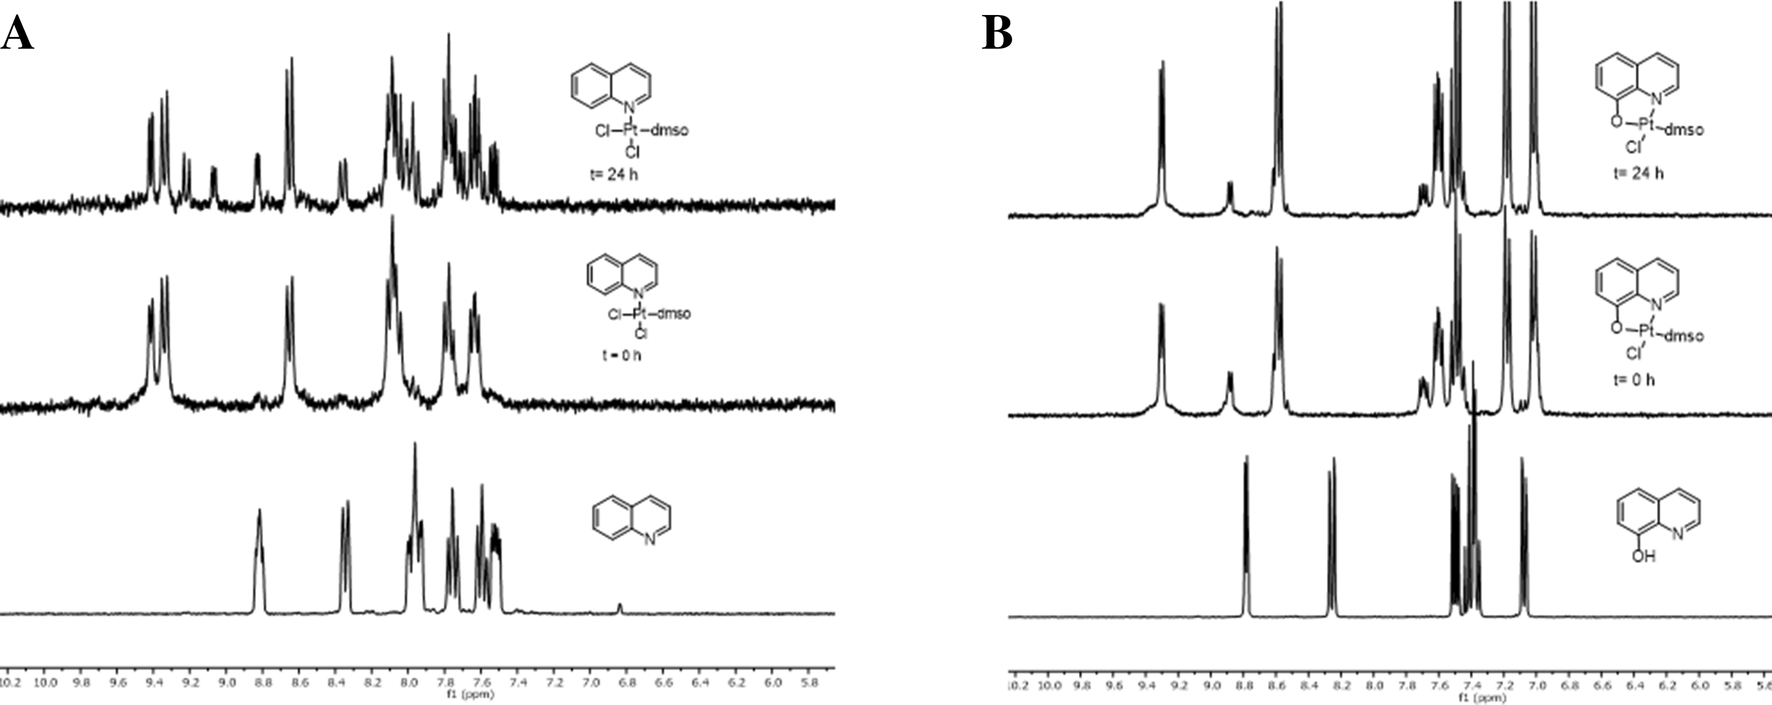 In vitro and in vivo anticancer effects of two quinoline